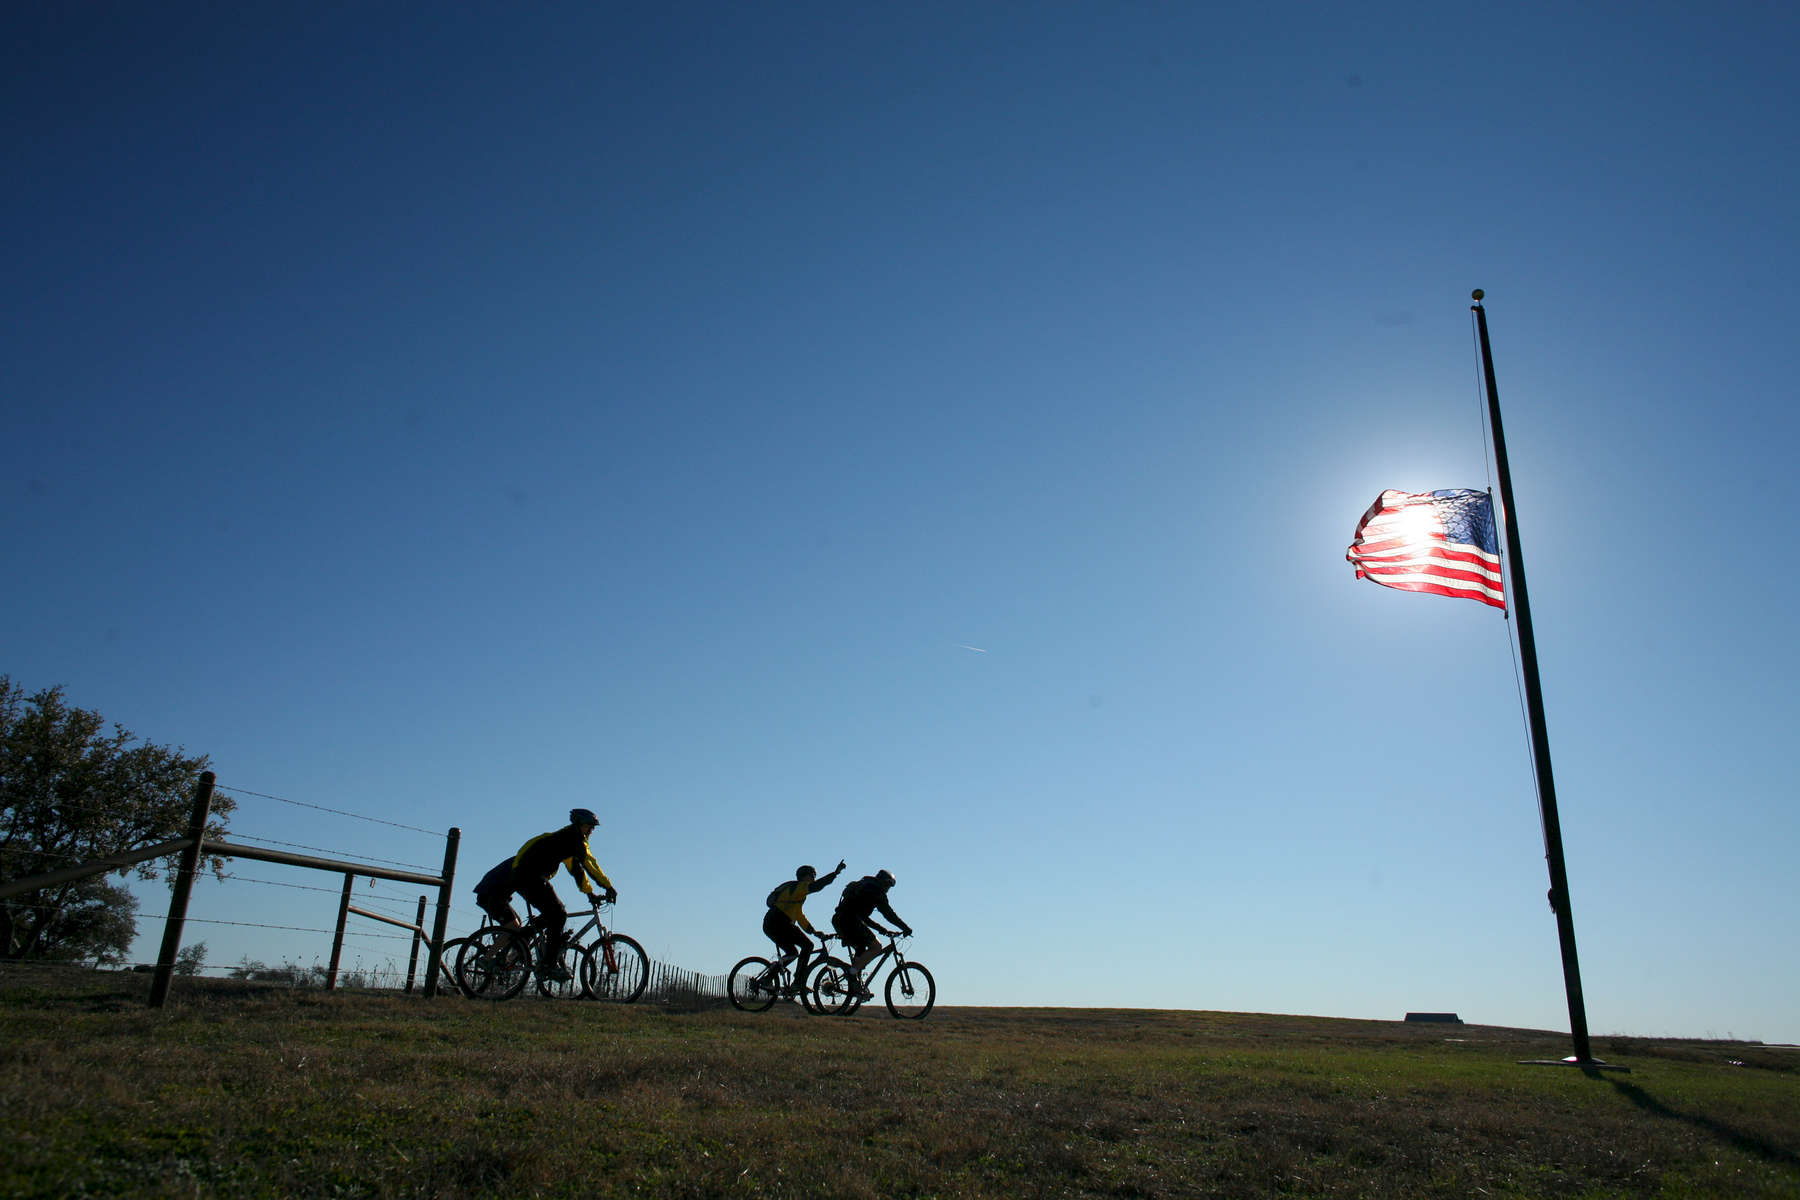 President Bush: Bike Riding with guests. Ranch, Crawford, Texas. American flag at half-staff on death of President Gerald R. Ford. Participants include: Mark McKinnon, Craig Savage and Kia Baskerville. POW